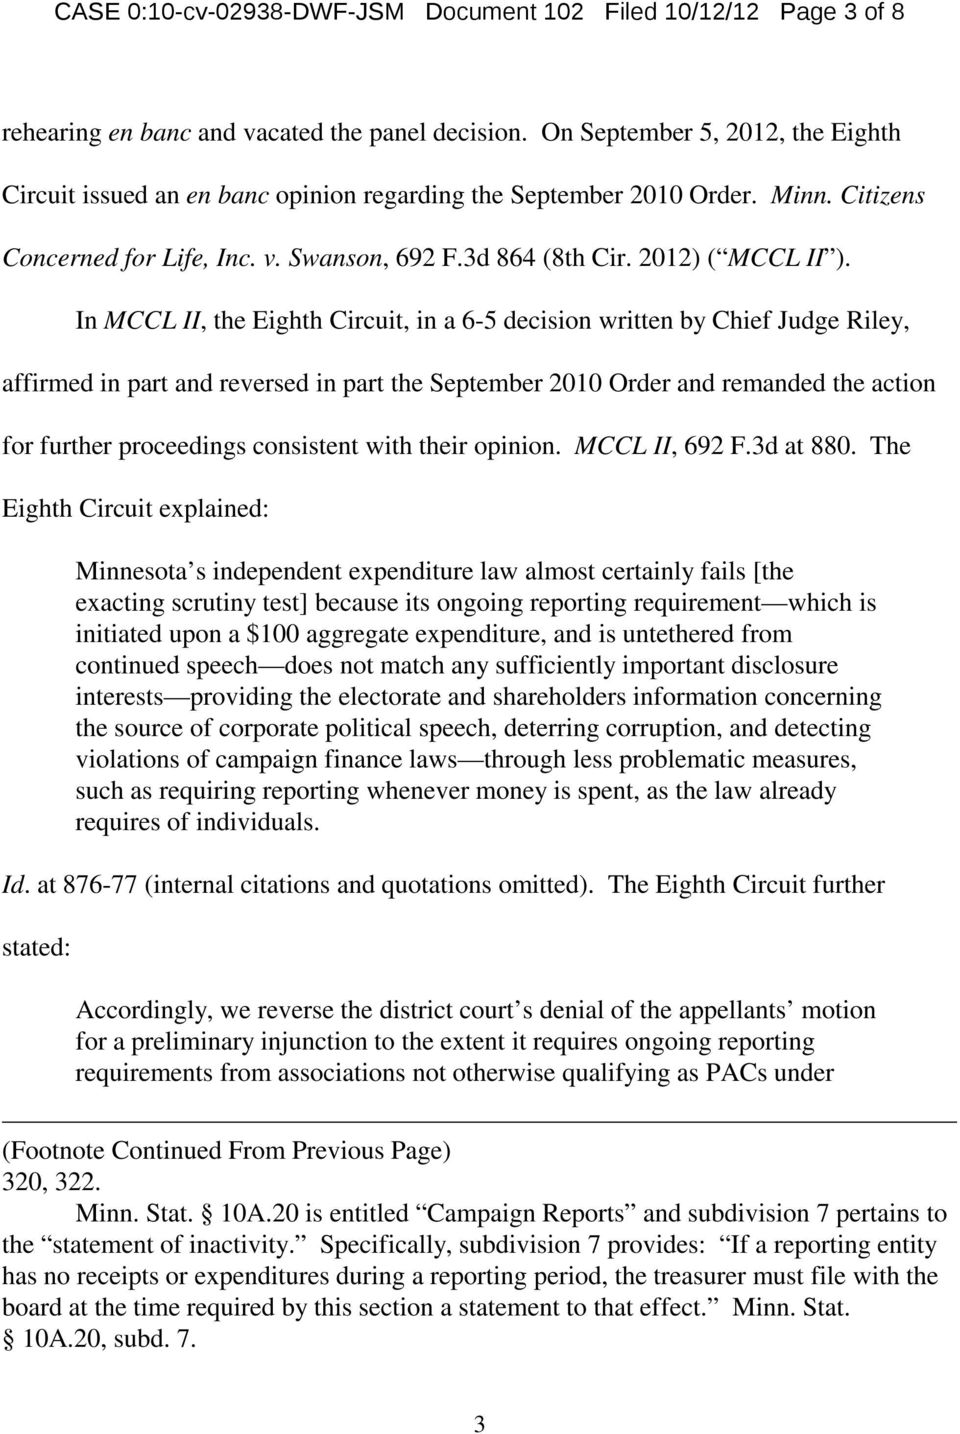 In MCCL II, the Eighth Circuit, in a 6-5 decision written by Chief Judge Riley, affirmed in part and reversed in part the September 2010 Order and remanded the action for further proceedings